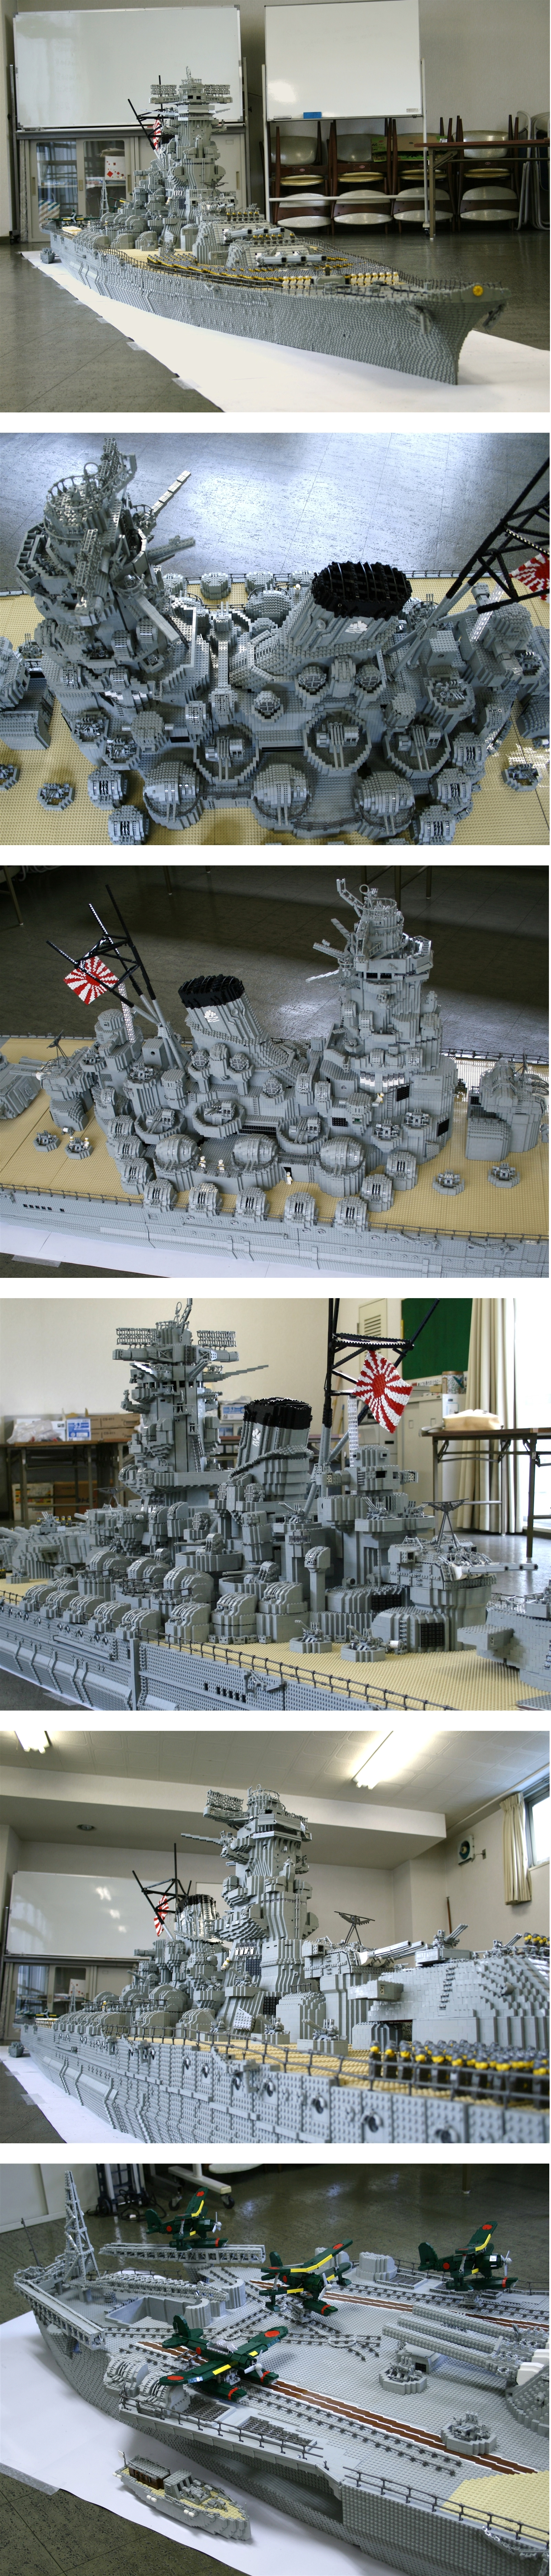 lego IJN Yamato, IRL this ship was the biggest in the world, but someone has built a bigger lego ship than this.